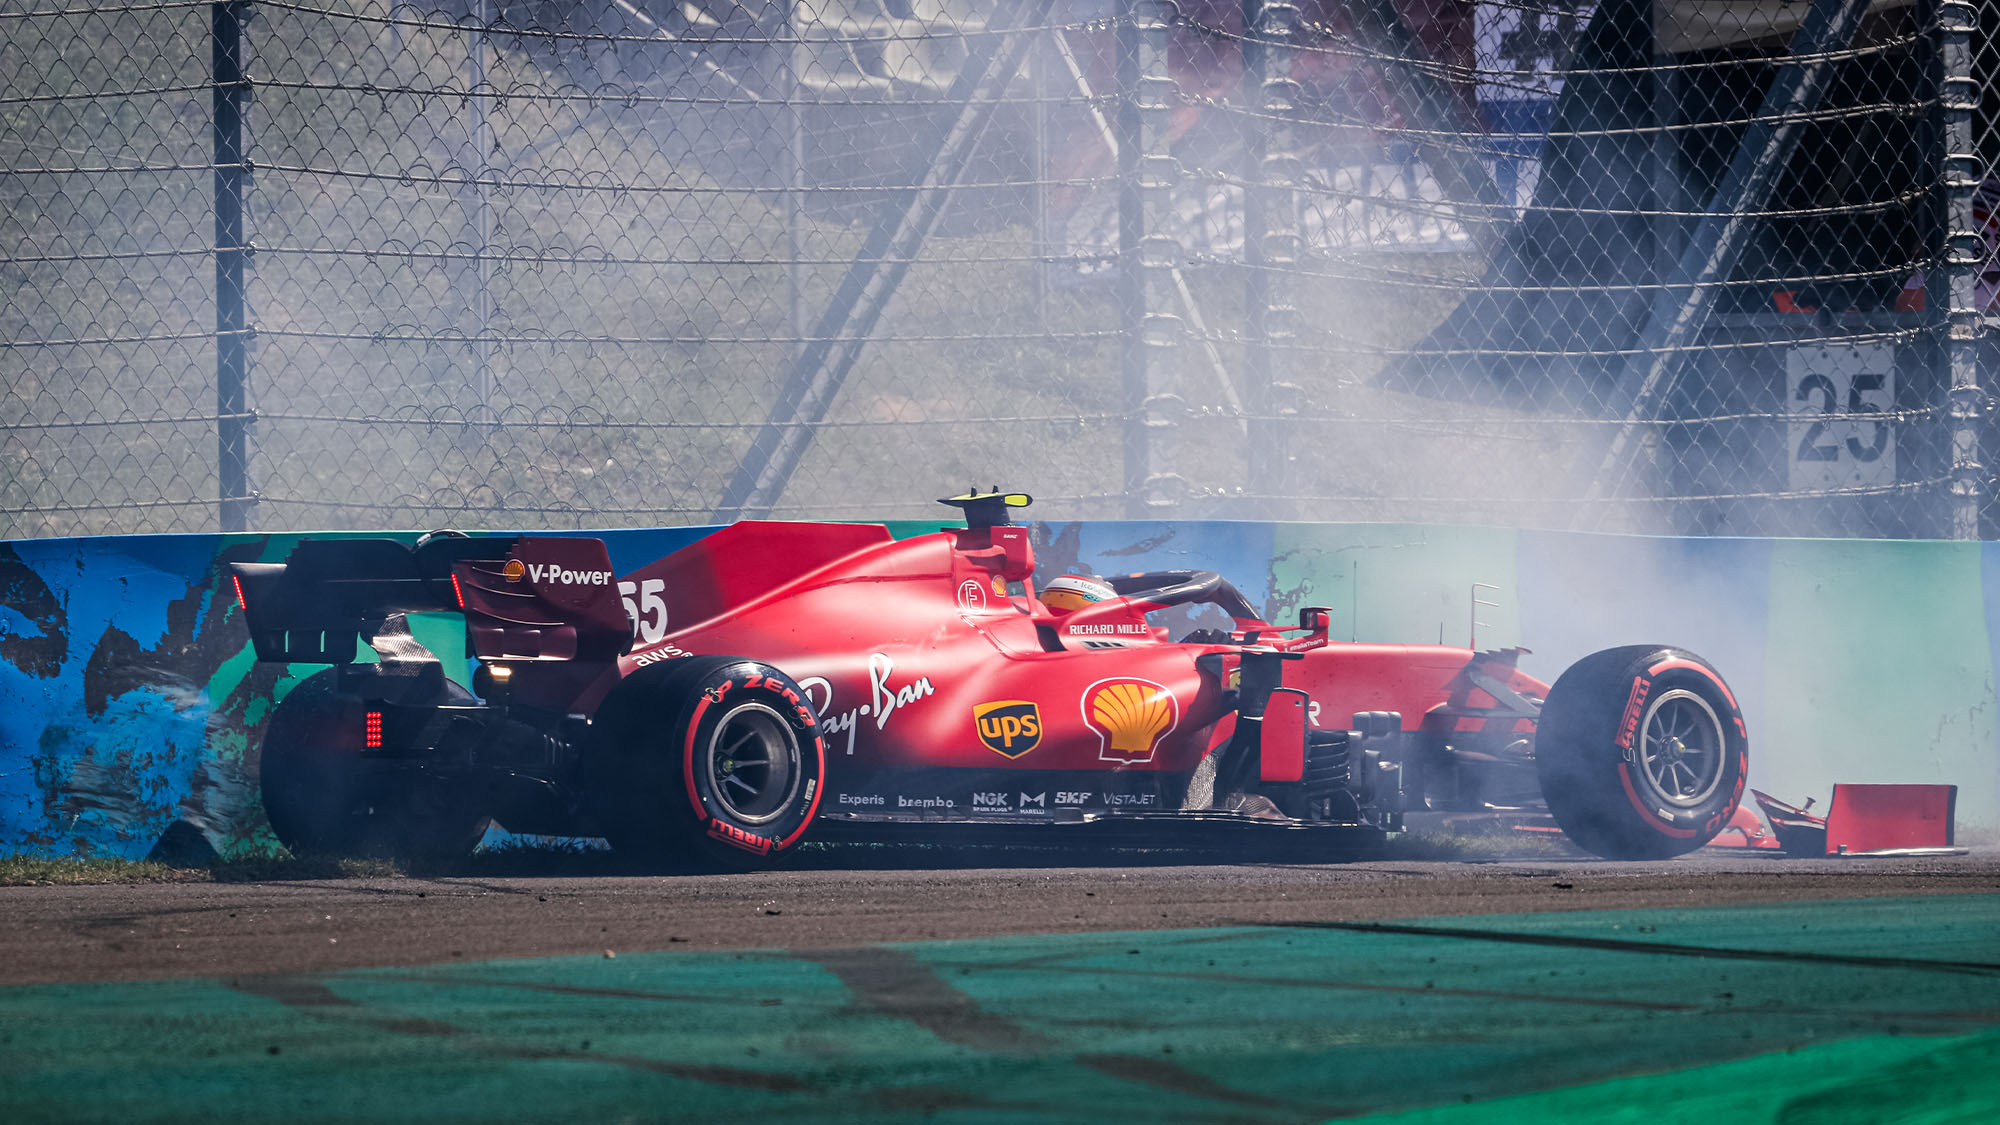 55 SAINZ Carlos (spa), Scuderia Ferrari SF21, action crash, accident, during the Formula 1 Magyar Nagydij 2021, Hungarian Grand Prix, 11th round of the 2021 FIA Formula One World Championship from July 30 to August 1, 2021 on the Hungaroring, in Mogyorod, near Budapest, Hungary - Photo Antonin Vincent / DPPI